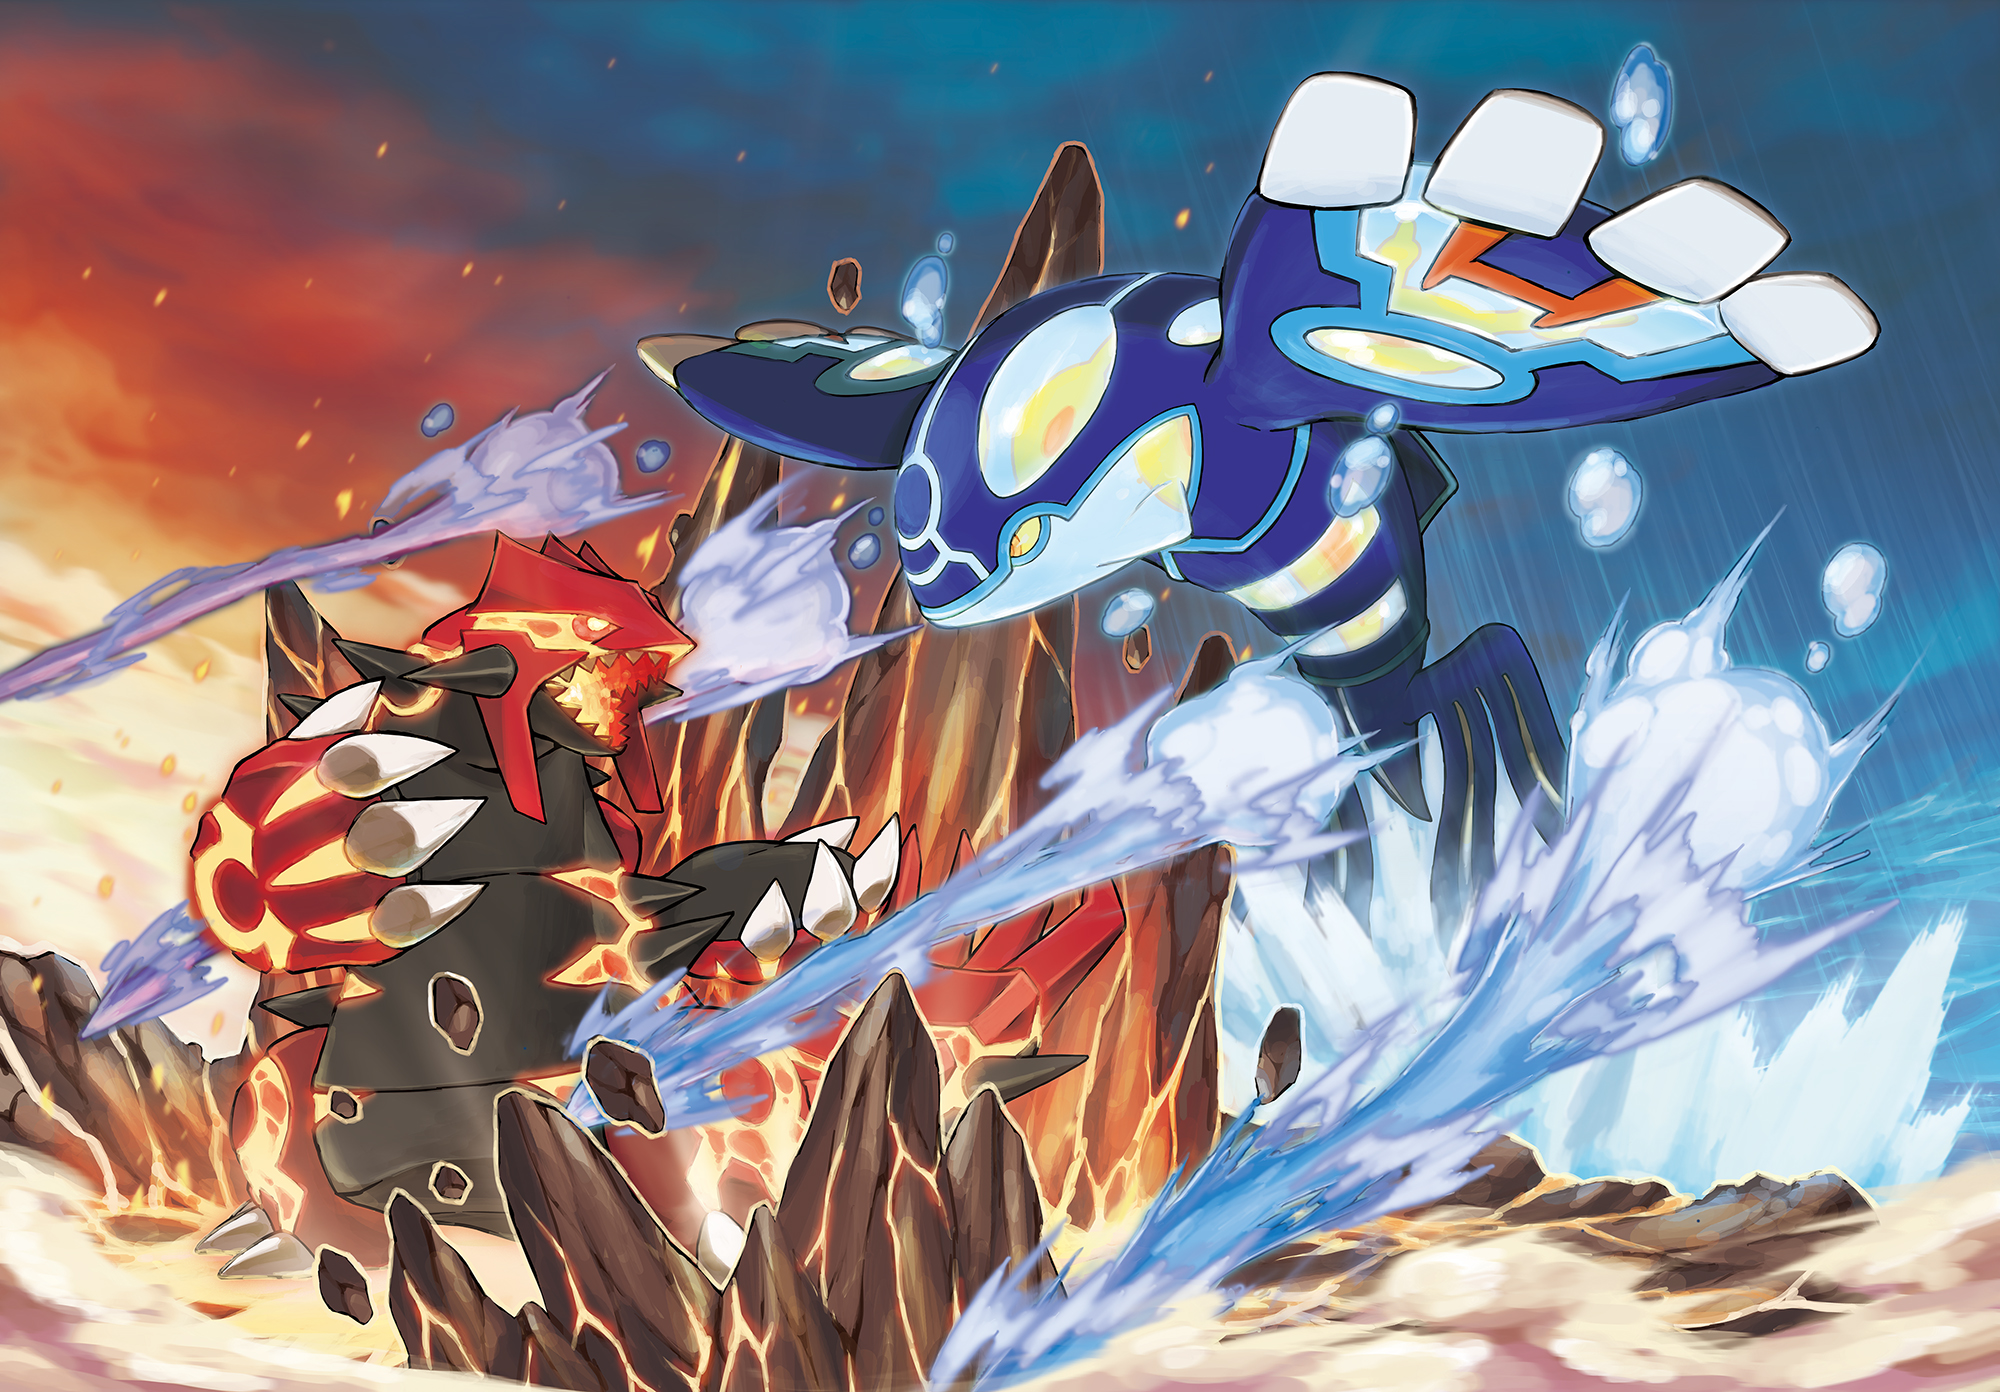 illustrazione_archeogroudon_vs_archeokyogre_rubino_omega_zaffiro_alpha_pokemontimes-it